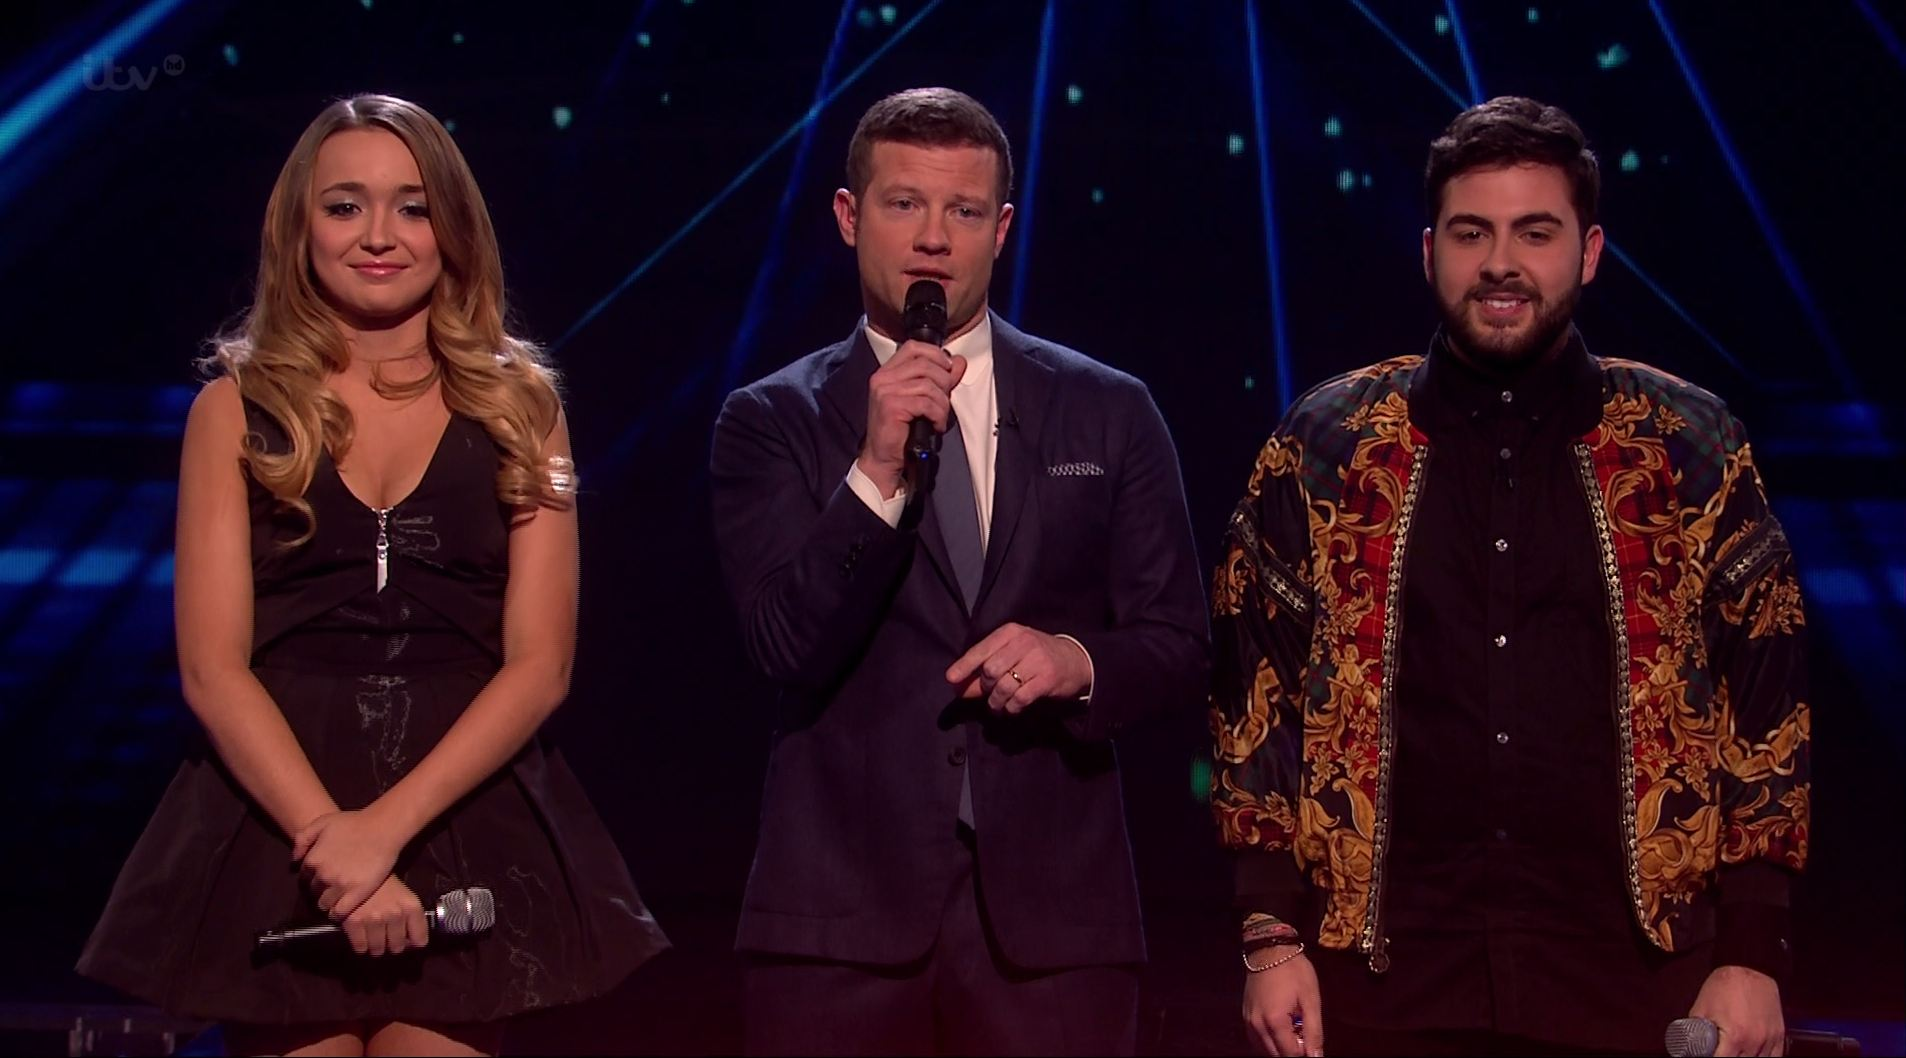 The X Factor 2014 Results: Who left tonight? Lauren Platt out but Andrea Faustini survives